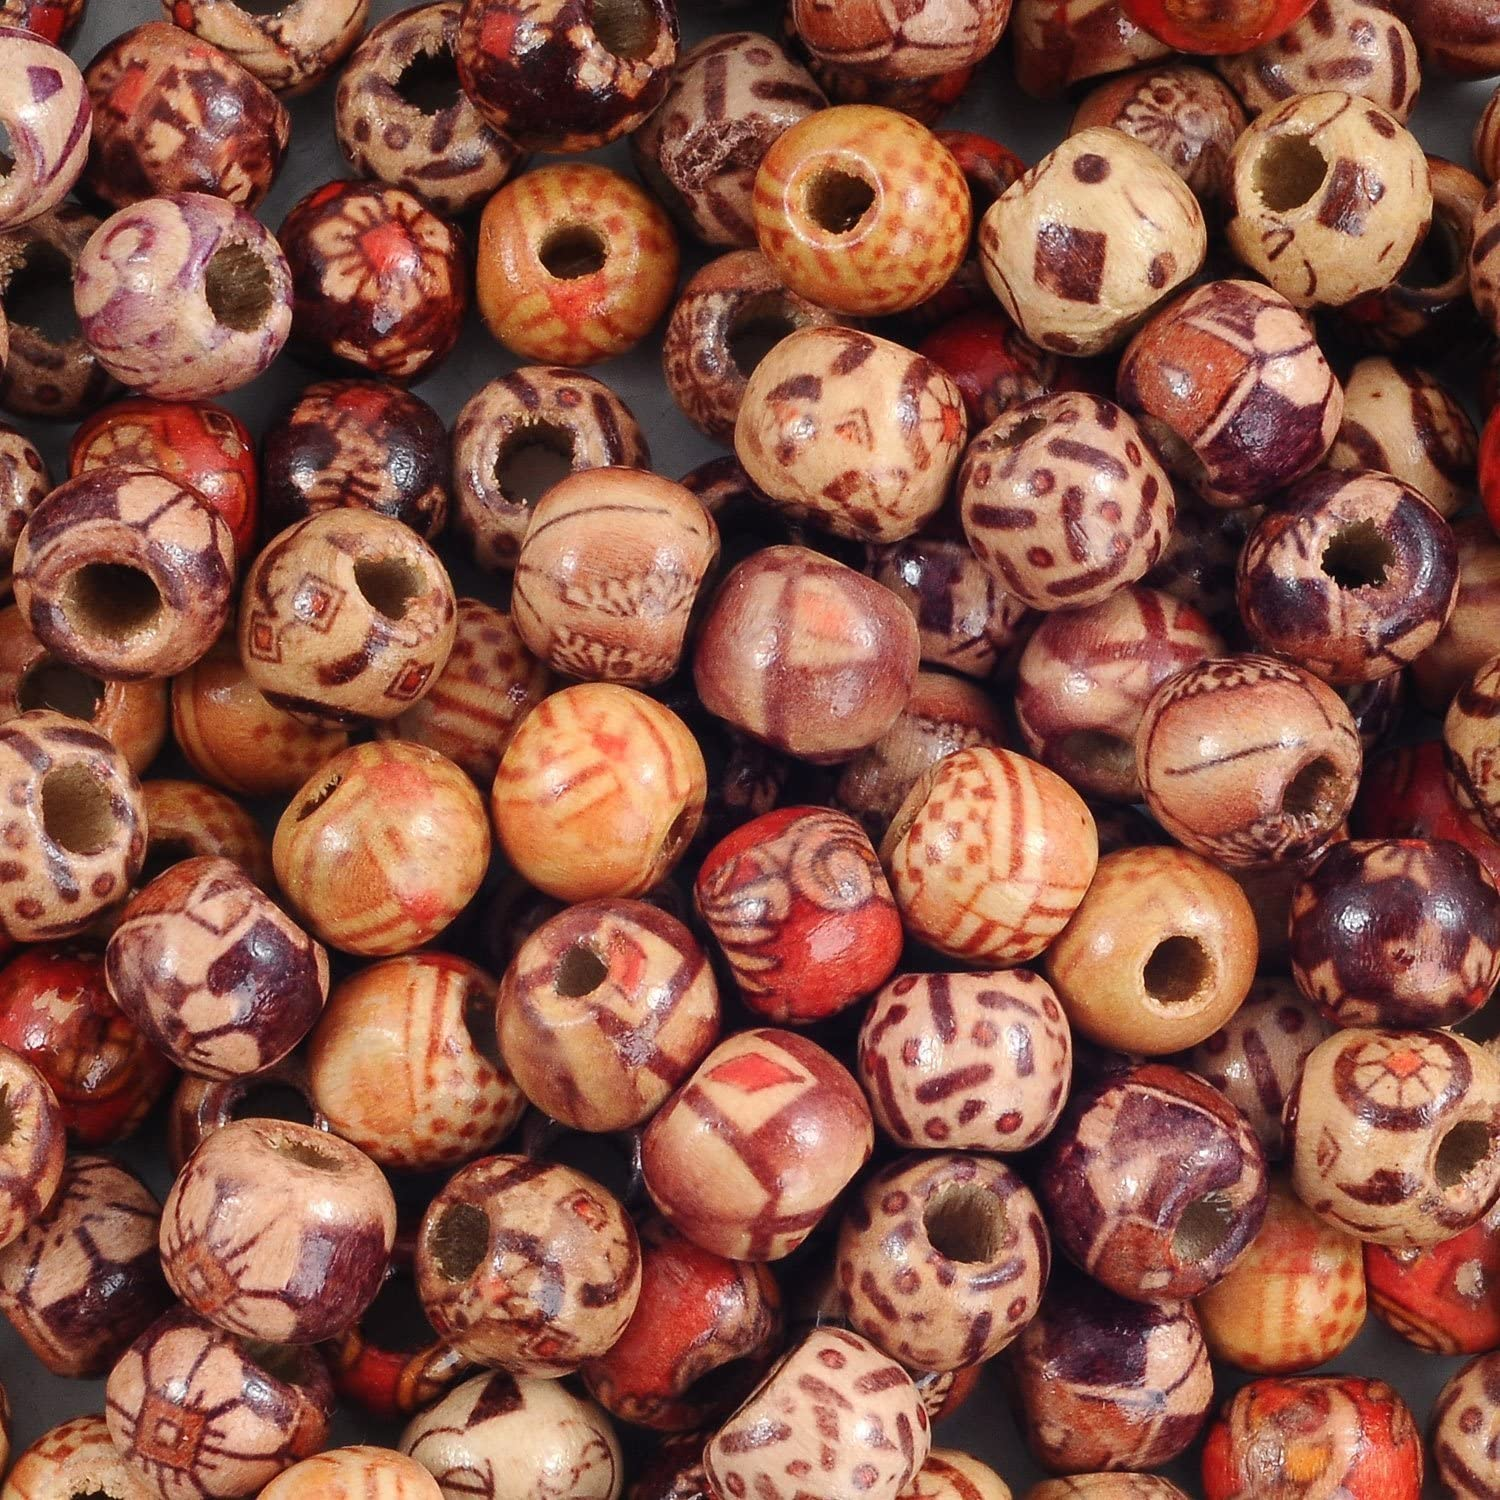 YUEAON Wholesale 200pcs 10mm Natural Painted Wood Beads Round Loose Wooden Bead Bulk Lots Ball for Jewelry Making Craft Hair DIY Macrame Rosary Bracelet Necklace Mix Color